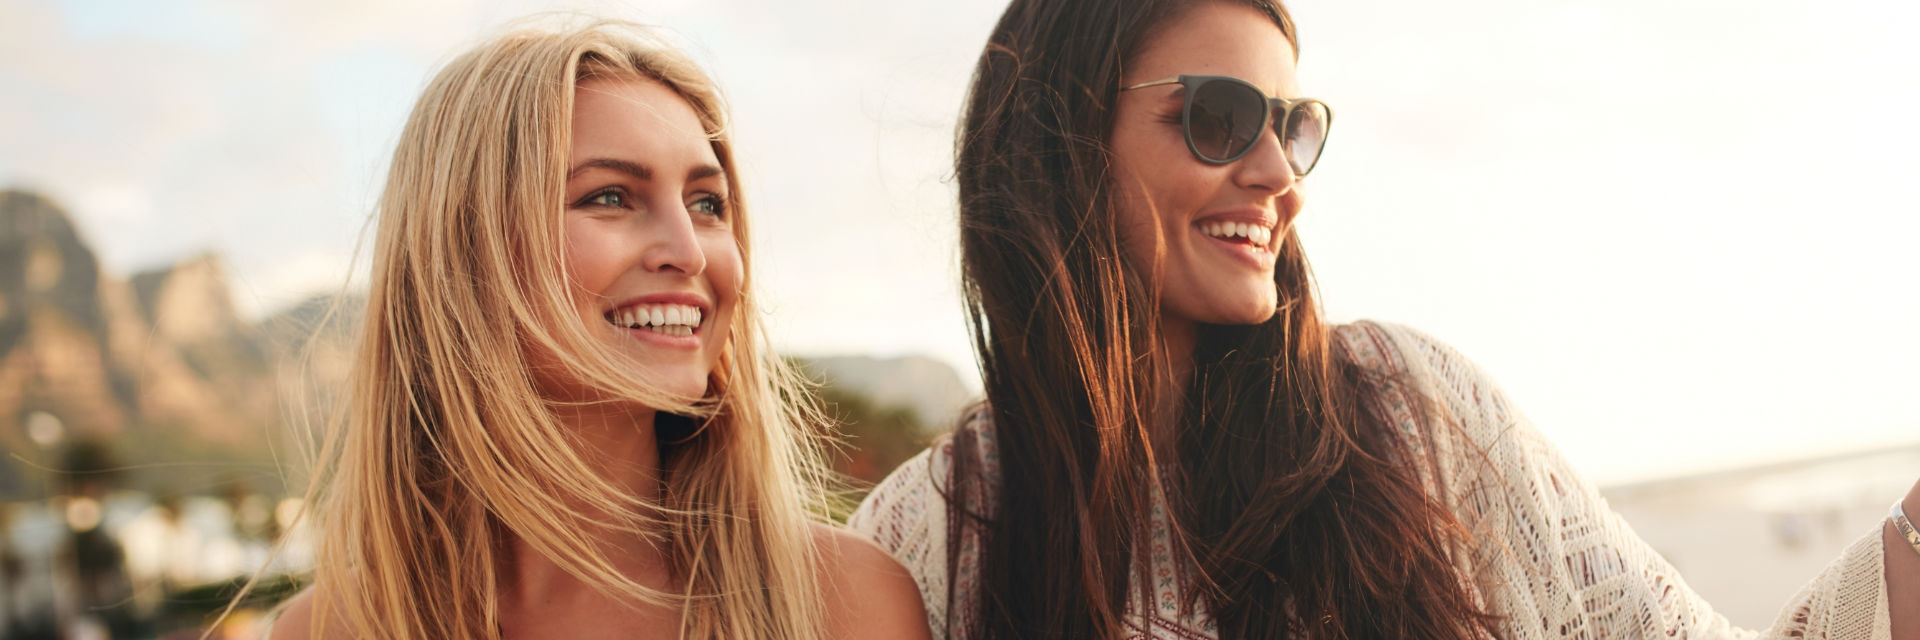 two attractive young women with perfect smiles